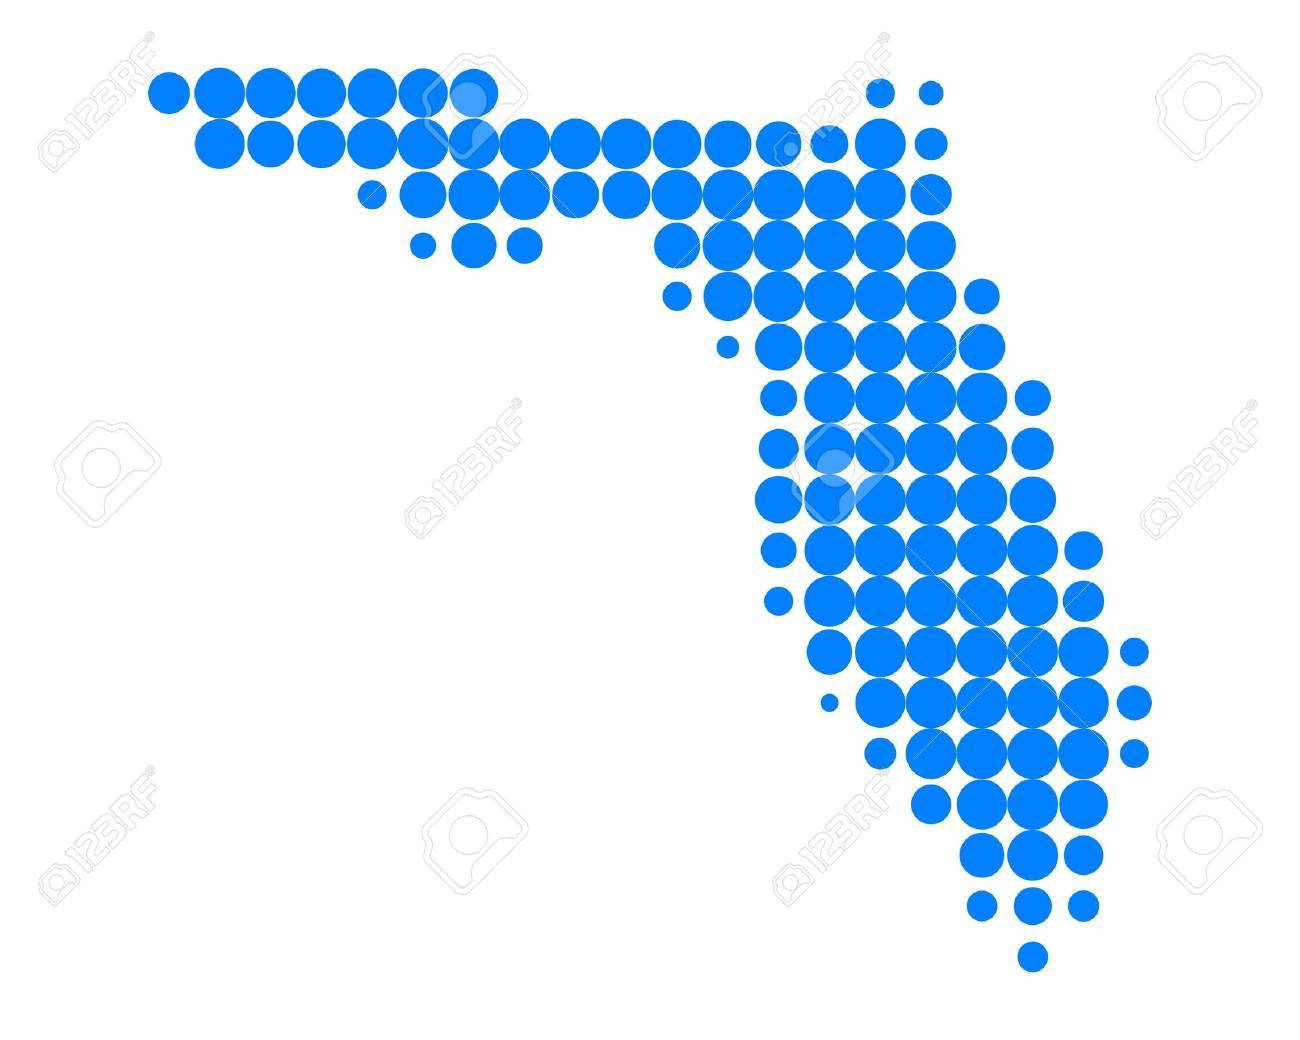 Florida Stock Vector Illustration And Royalty Free Florida - Florida map vector free